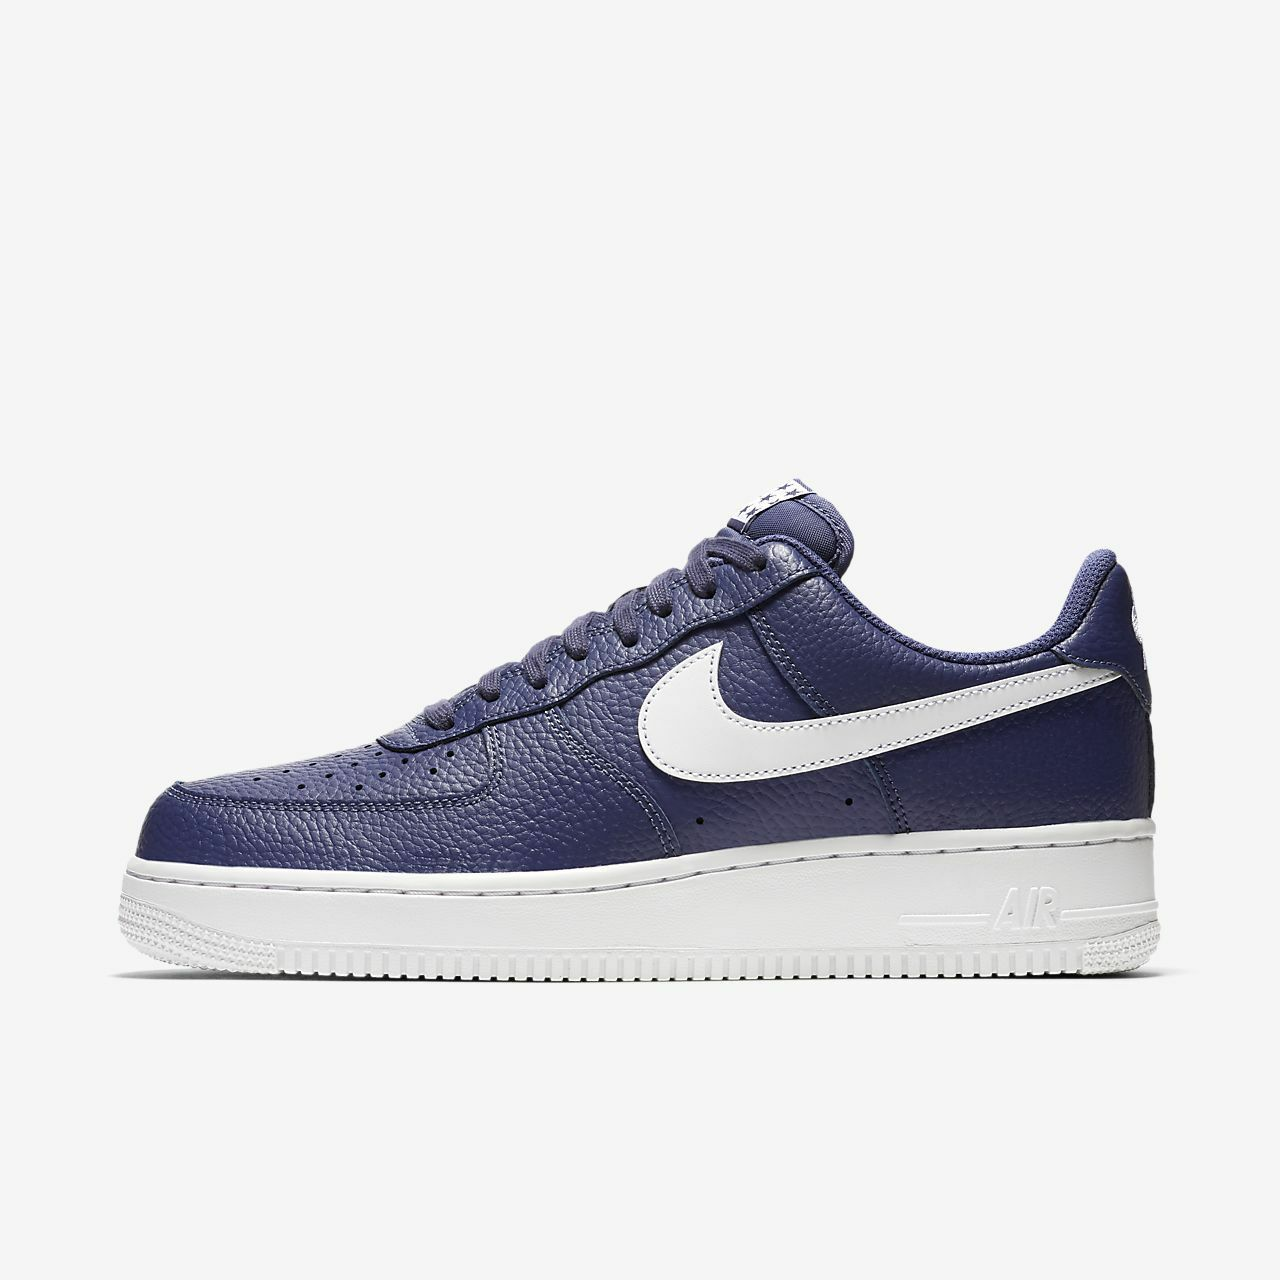 a153c5e413 Nike Air Force 1 One '07 Low Top bluee Recall and White AA4083 401 AF1